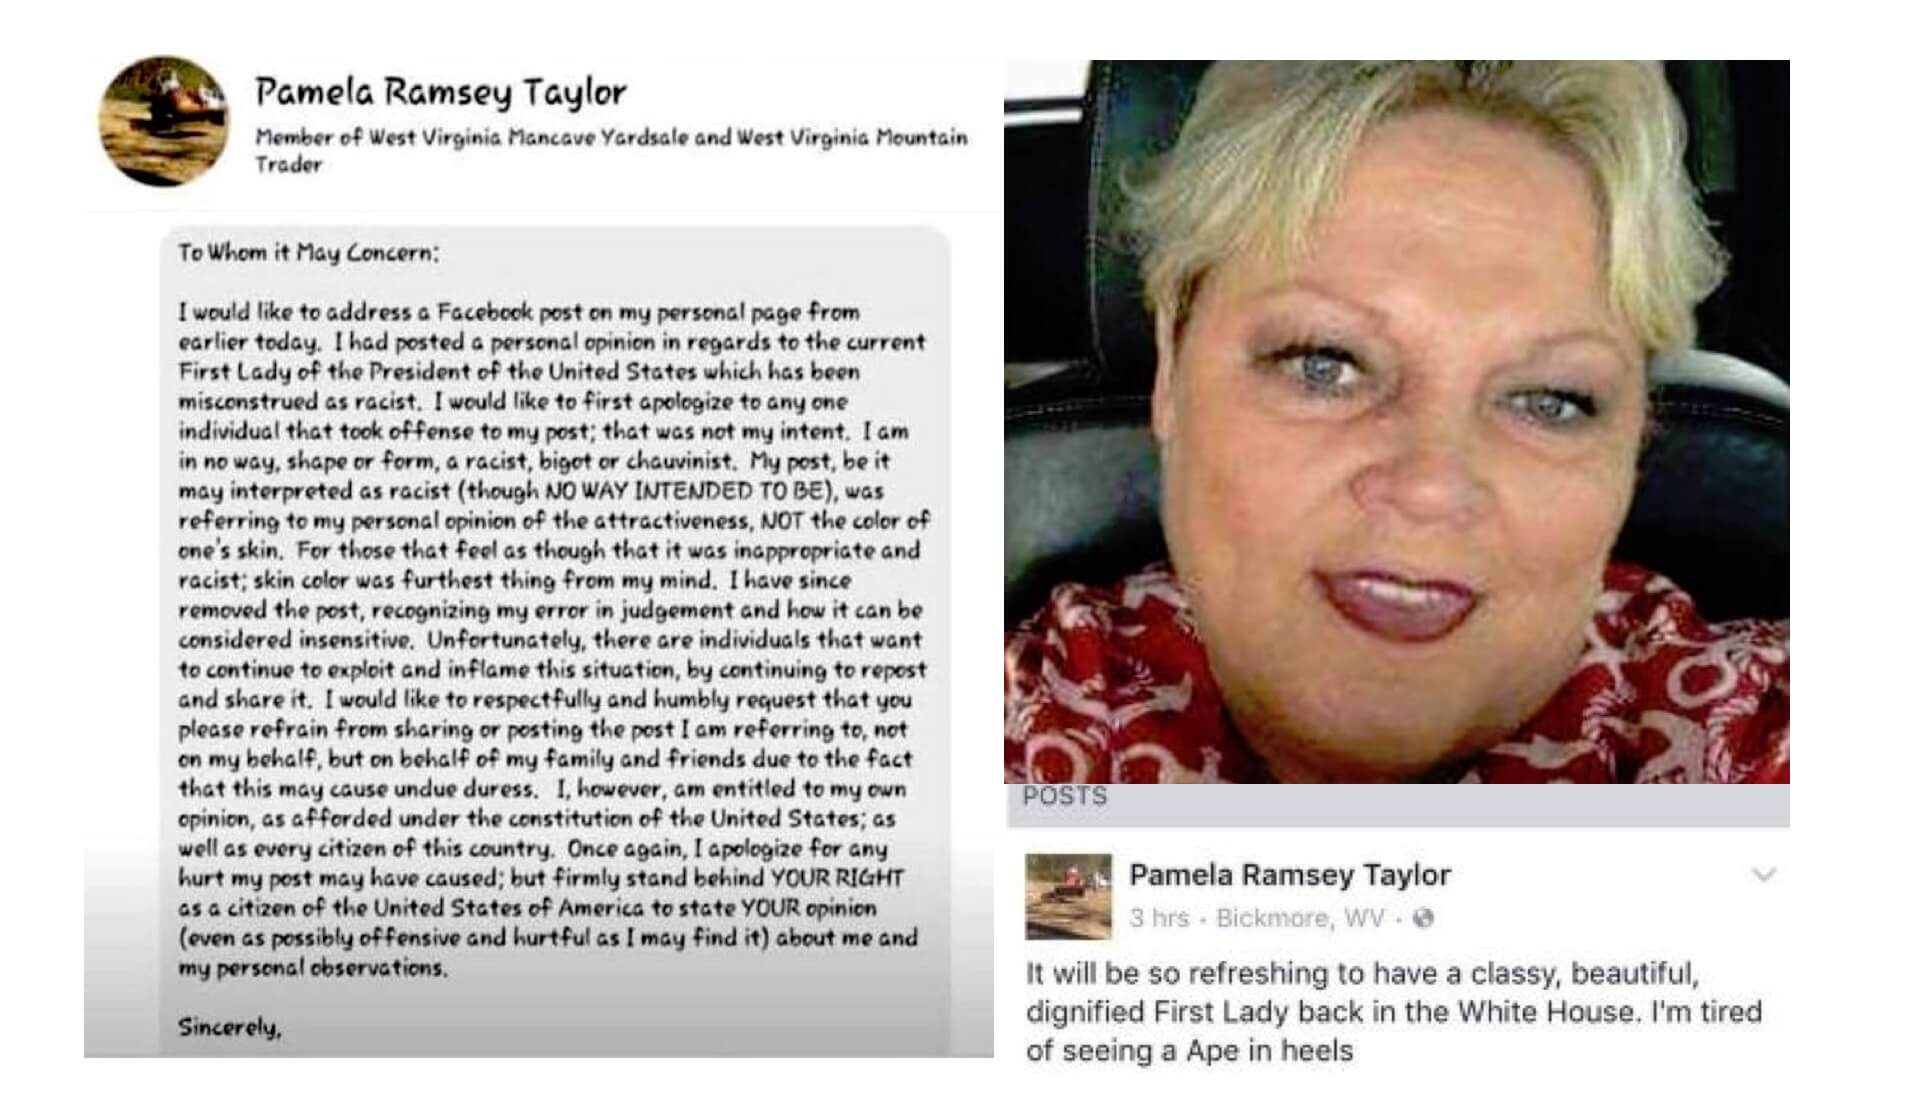 pamela ramsey taylor on michelle obama ape in heels